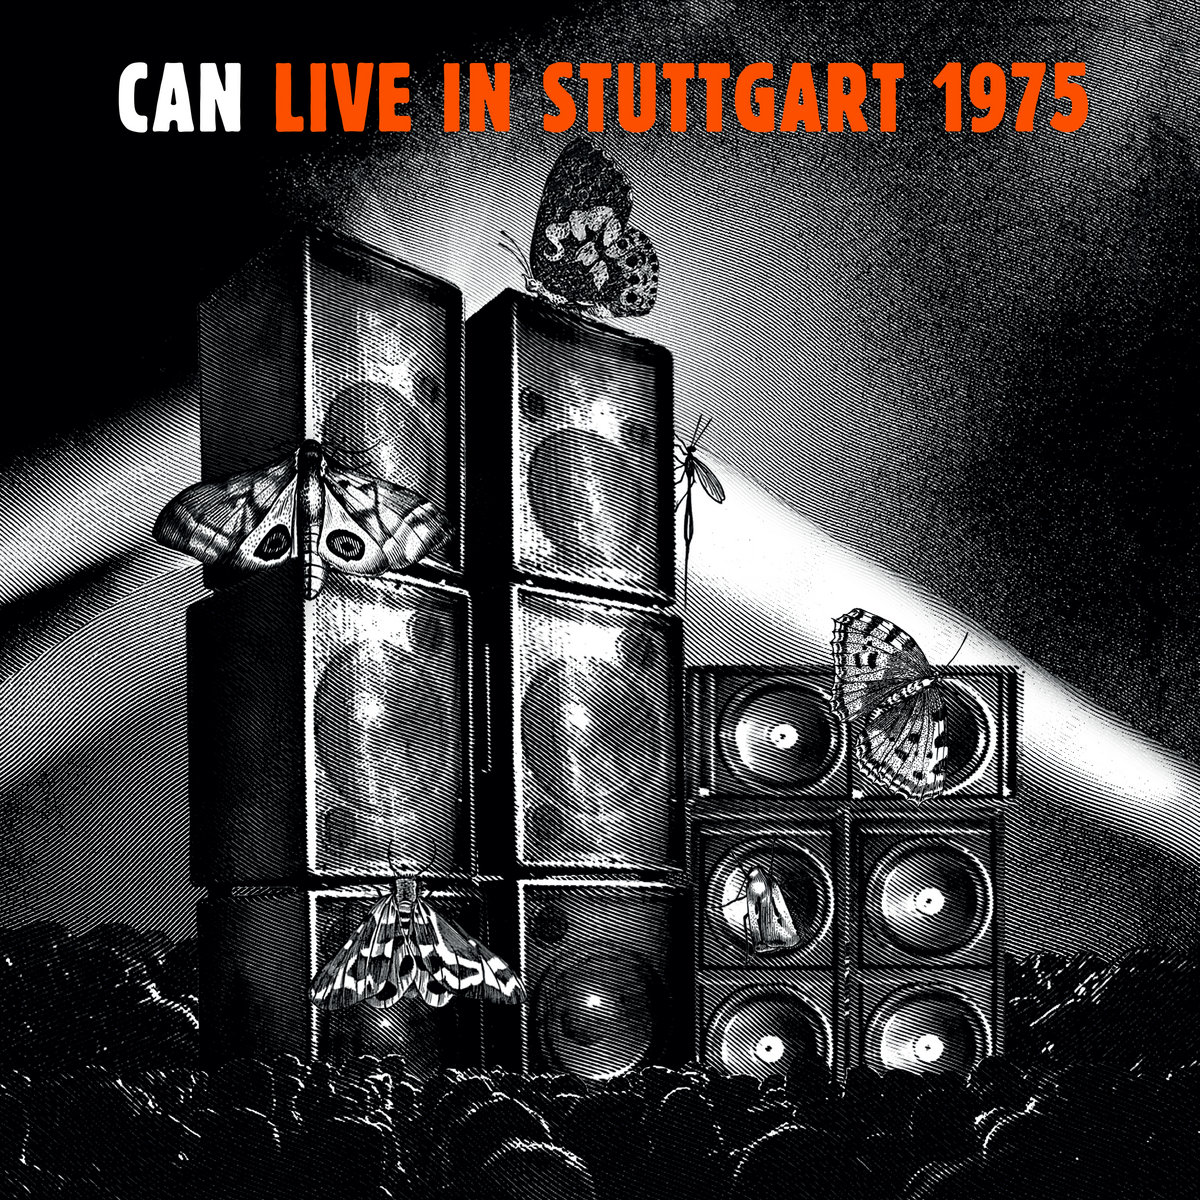 CAN - LIVE IN STUTTGART 1975 Cover